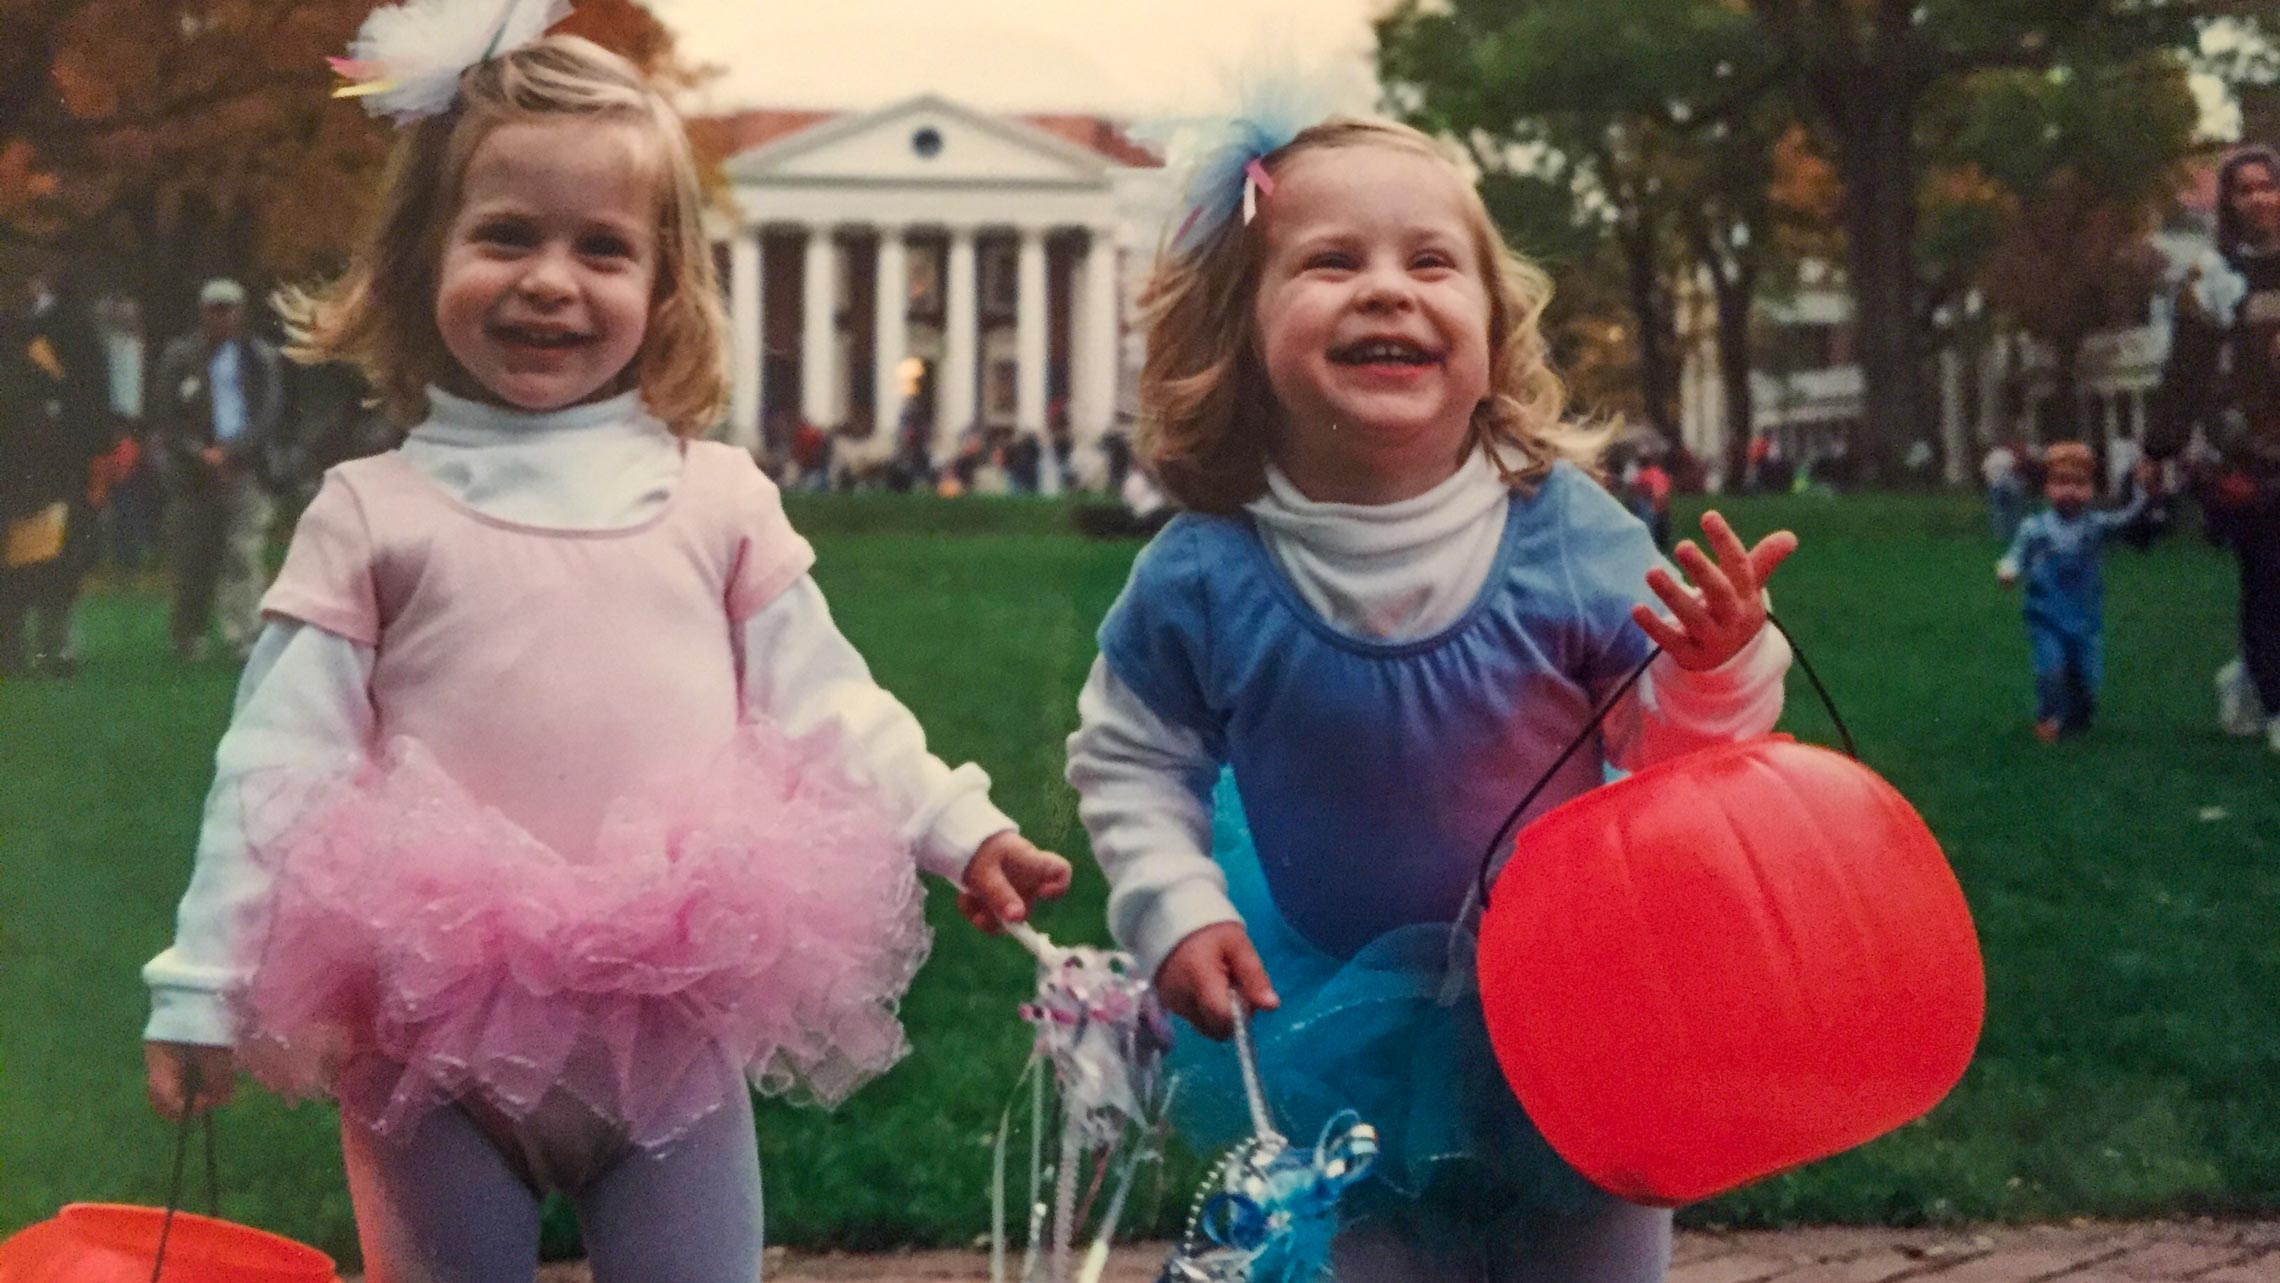 Two blonde little girls in matching fairy costumes.